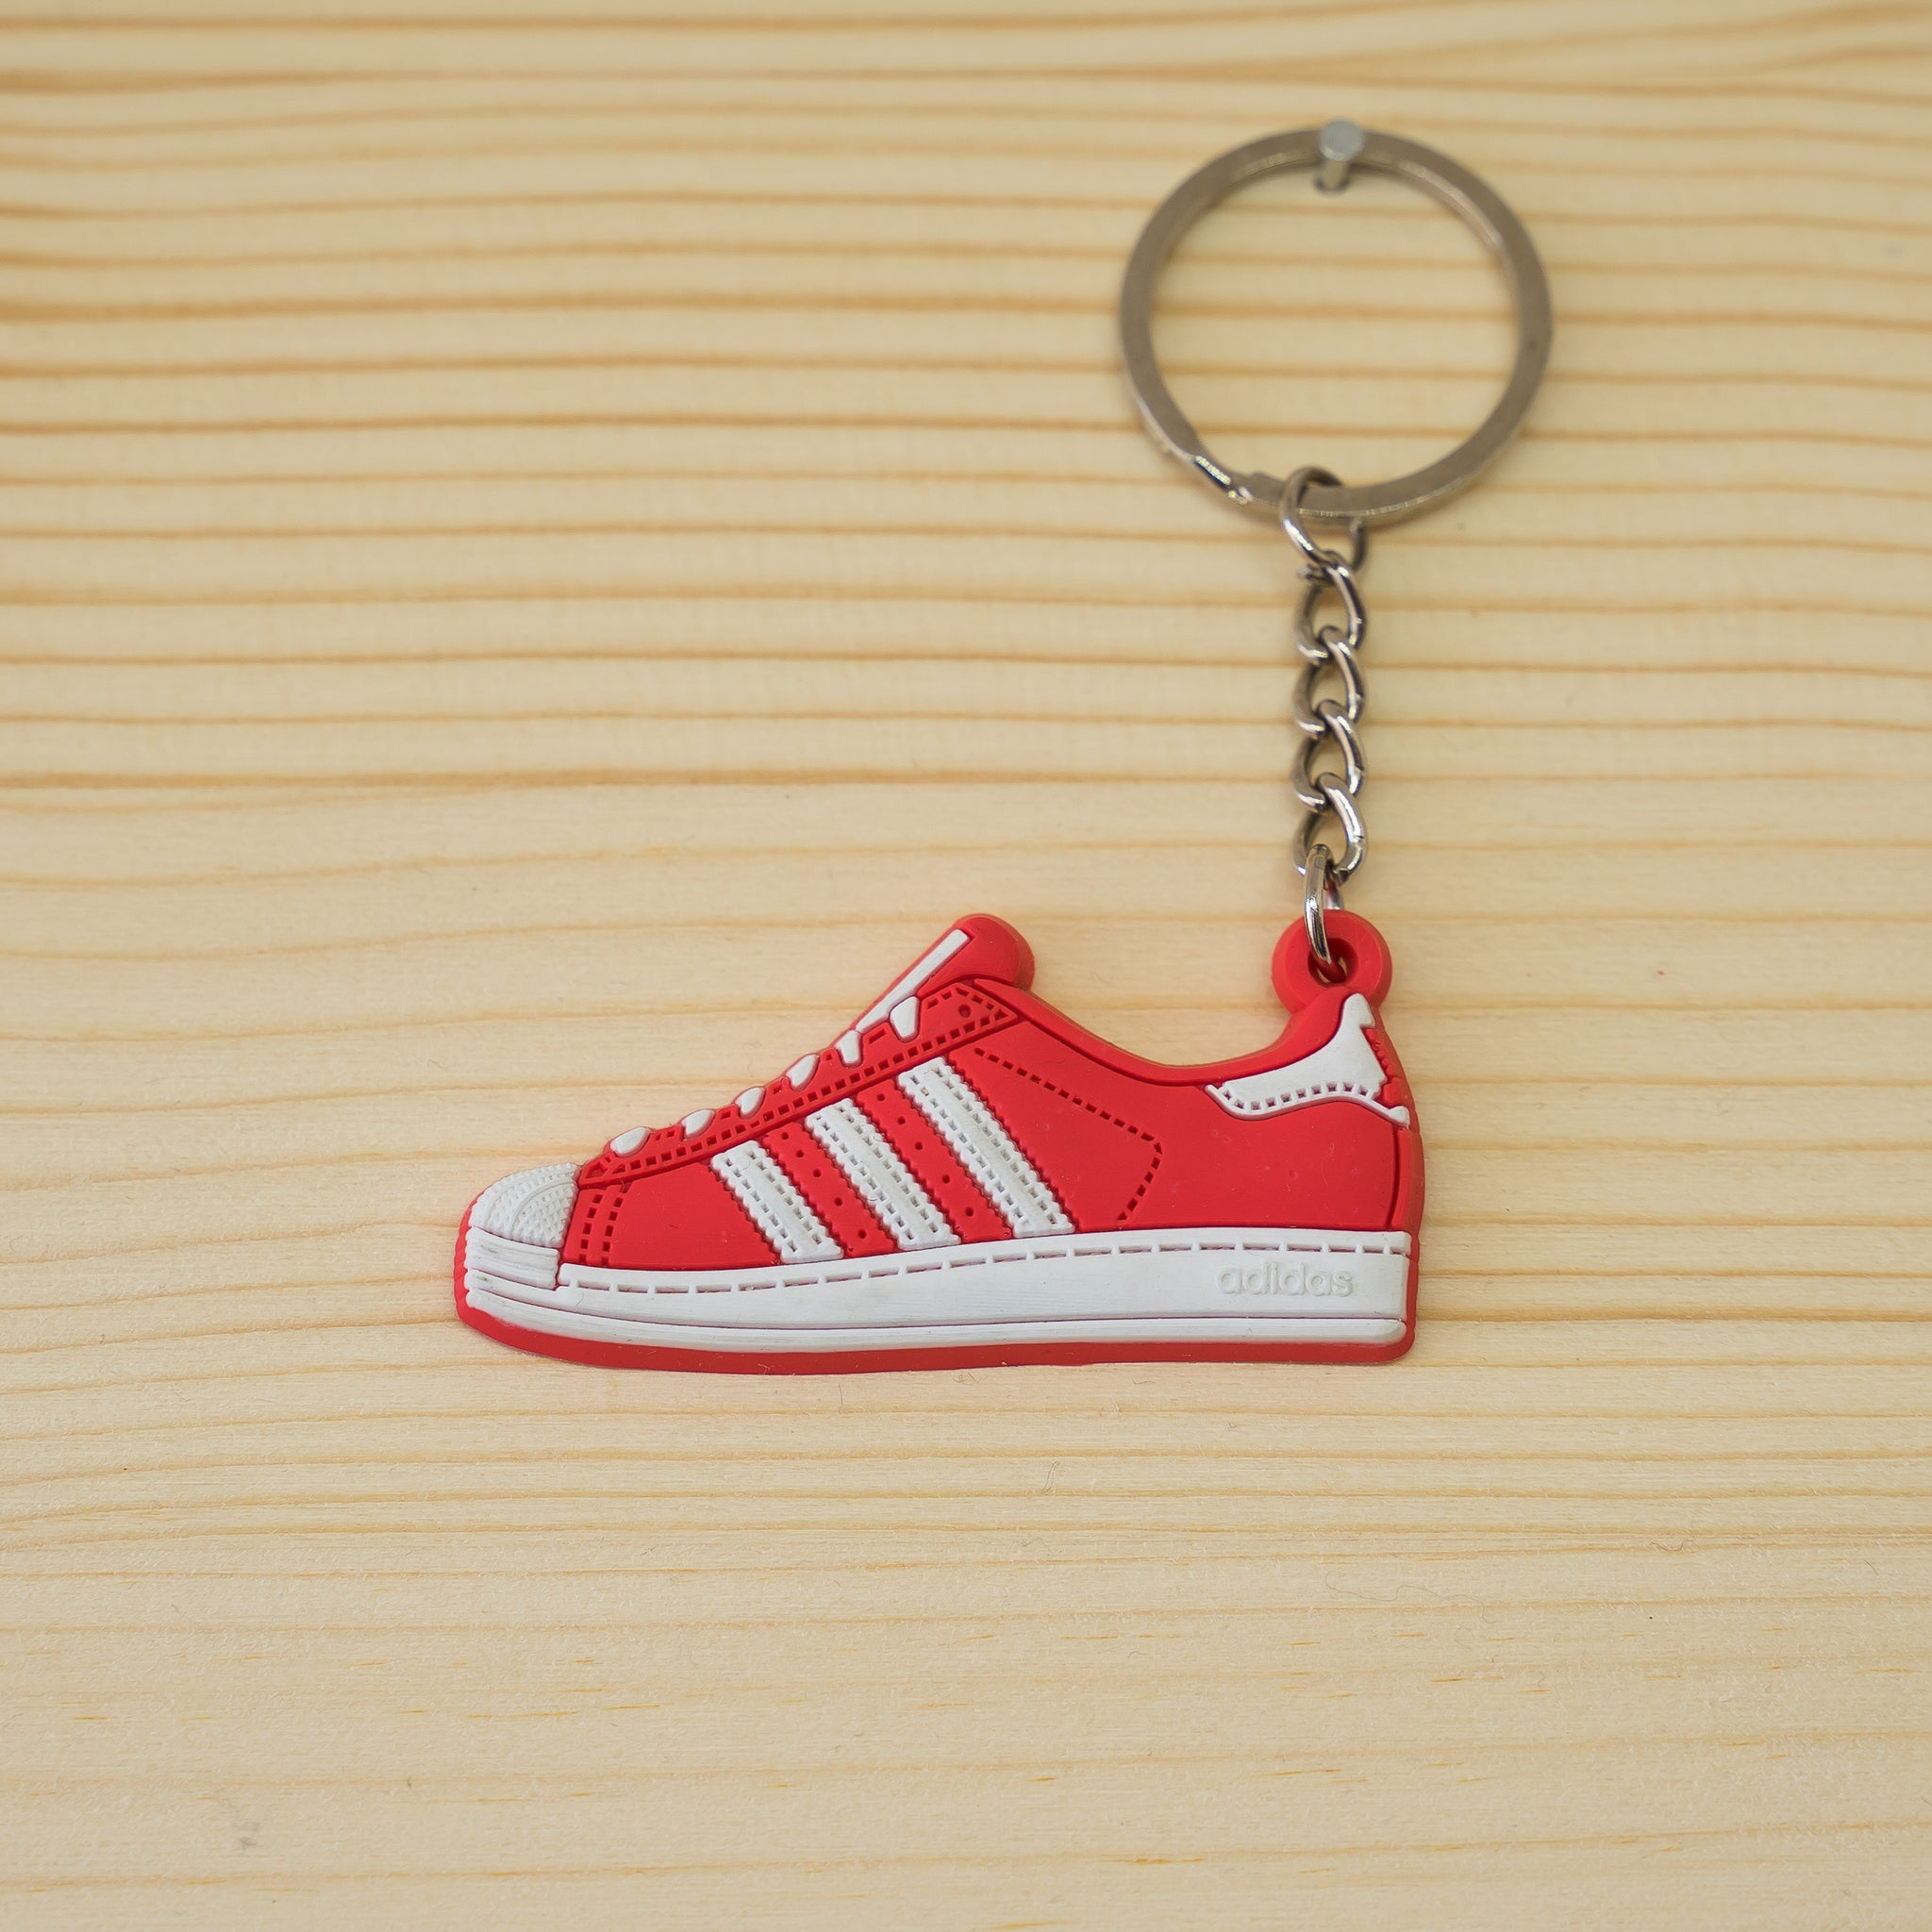 Sneakers Keychain #1